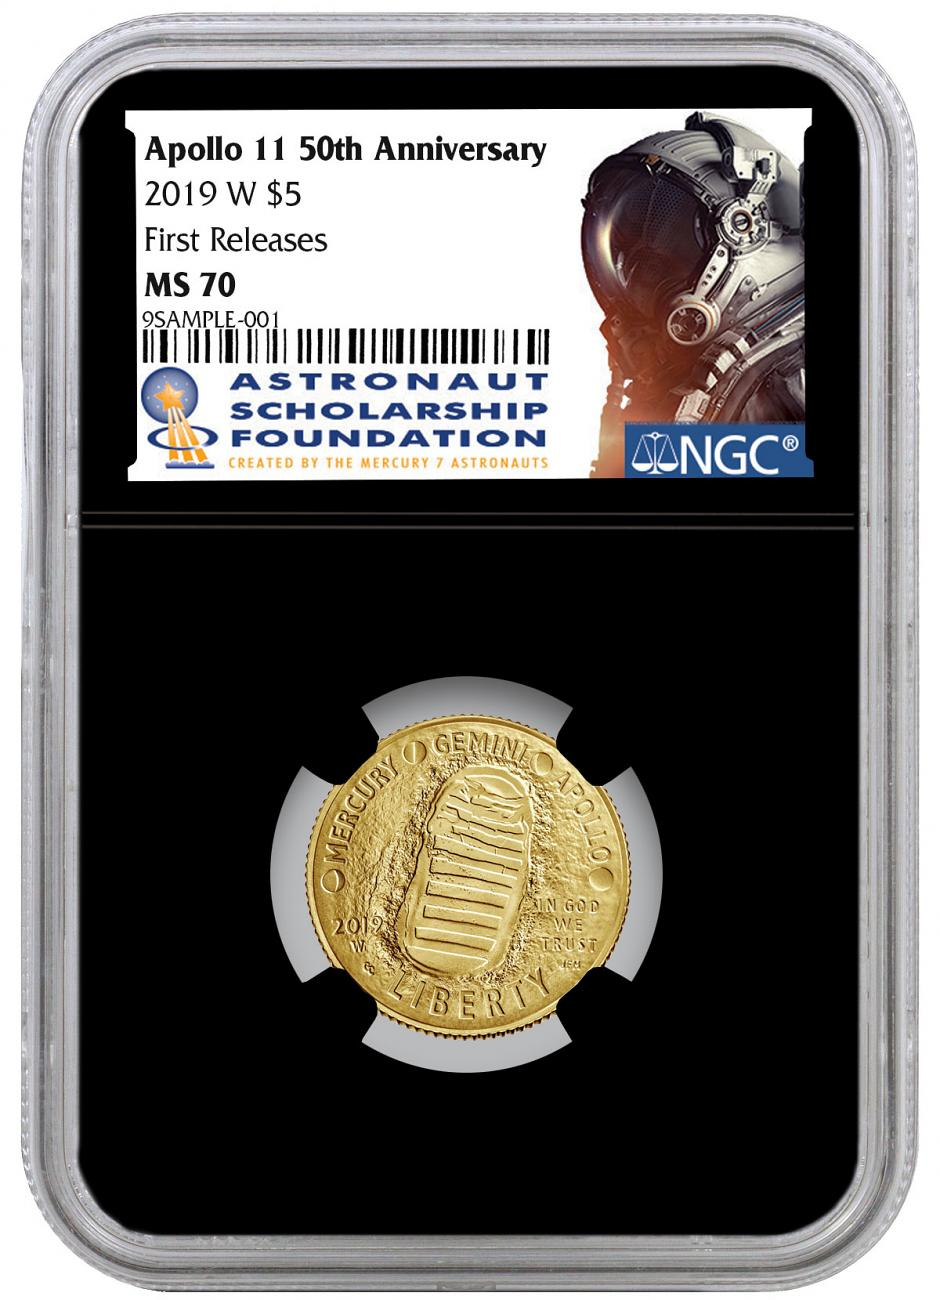 2019-W Apollo 11 50th Anniversary $5 Gold Commemorative Coin NGC MS70 FR Black Core Holder Astronaut Scholarship Foundation Label